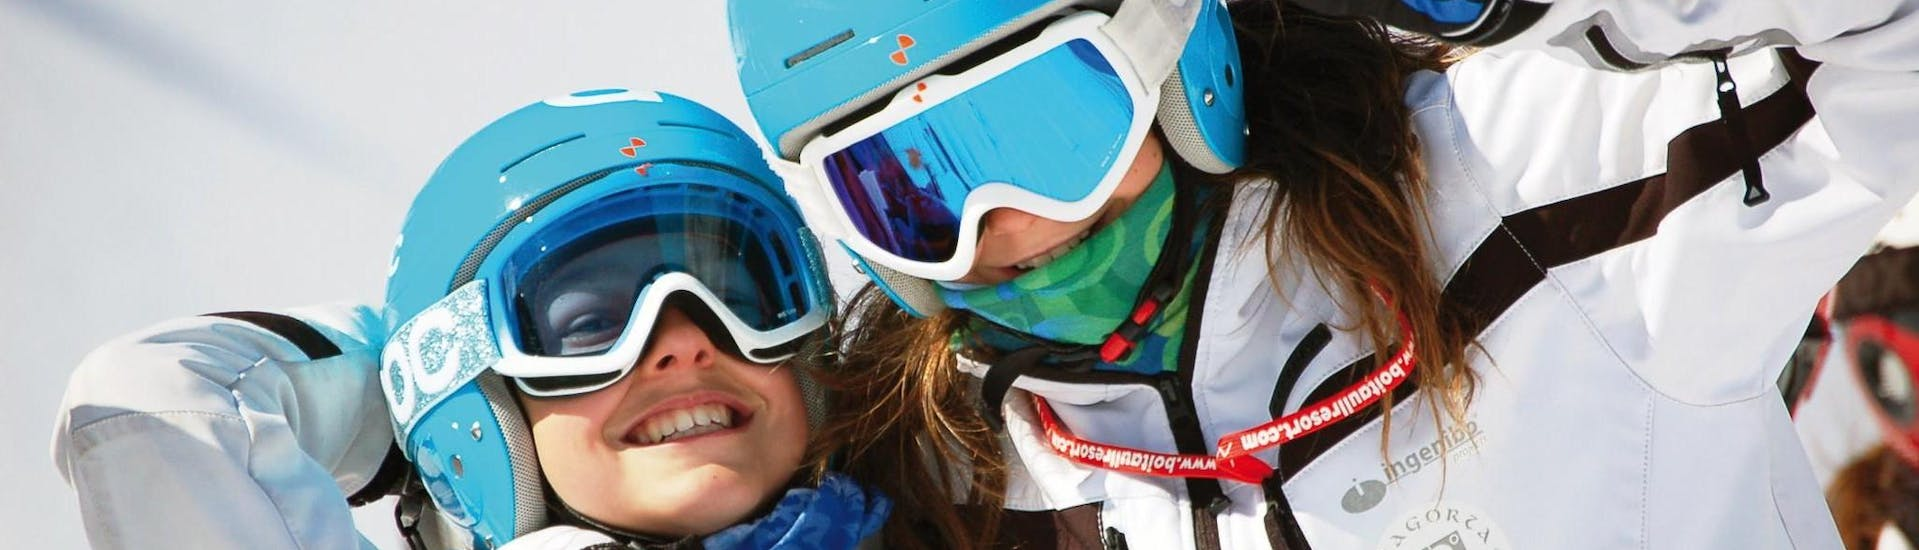 kids-ski-lessons-for-all-levels-weekend-escola-vall-de-boi-hero